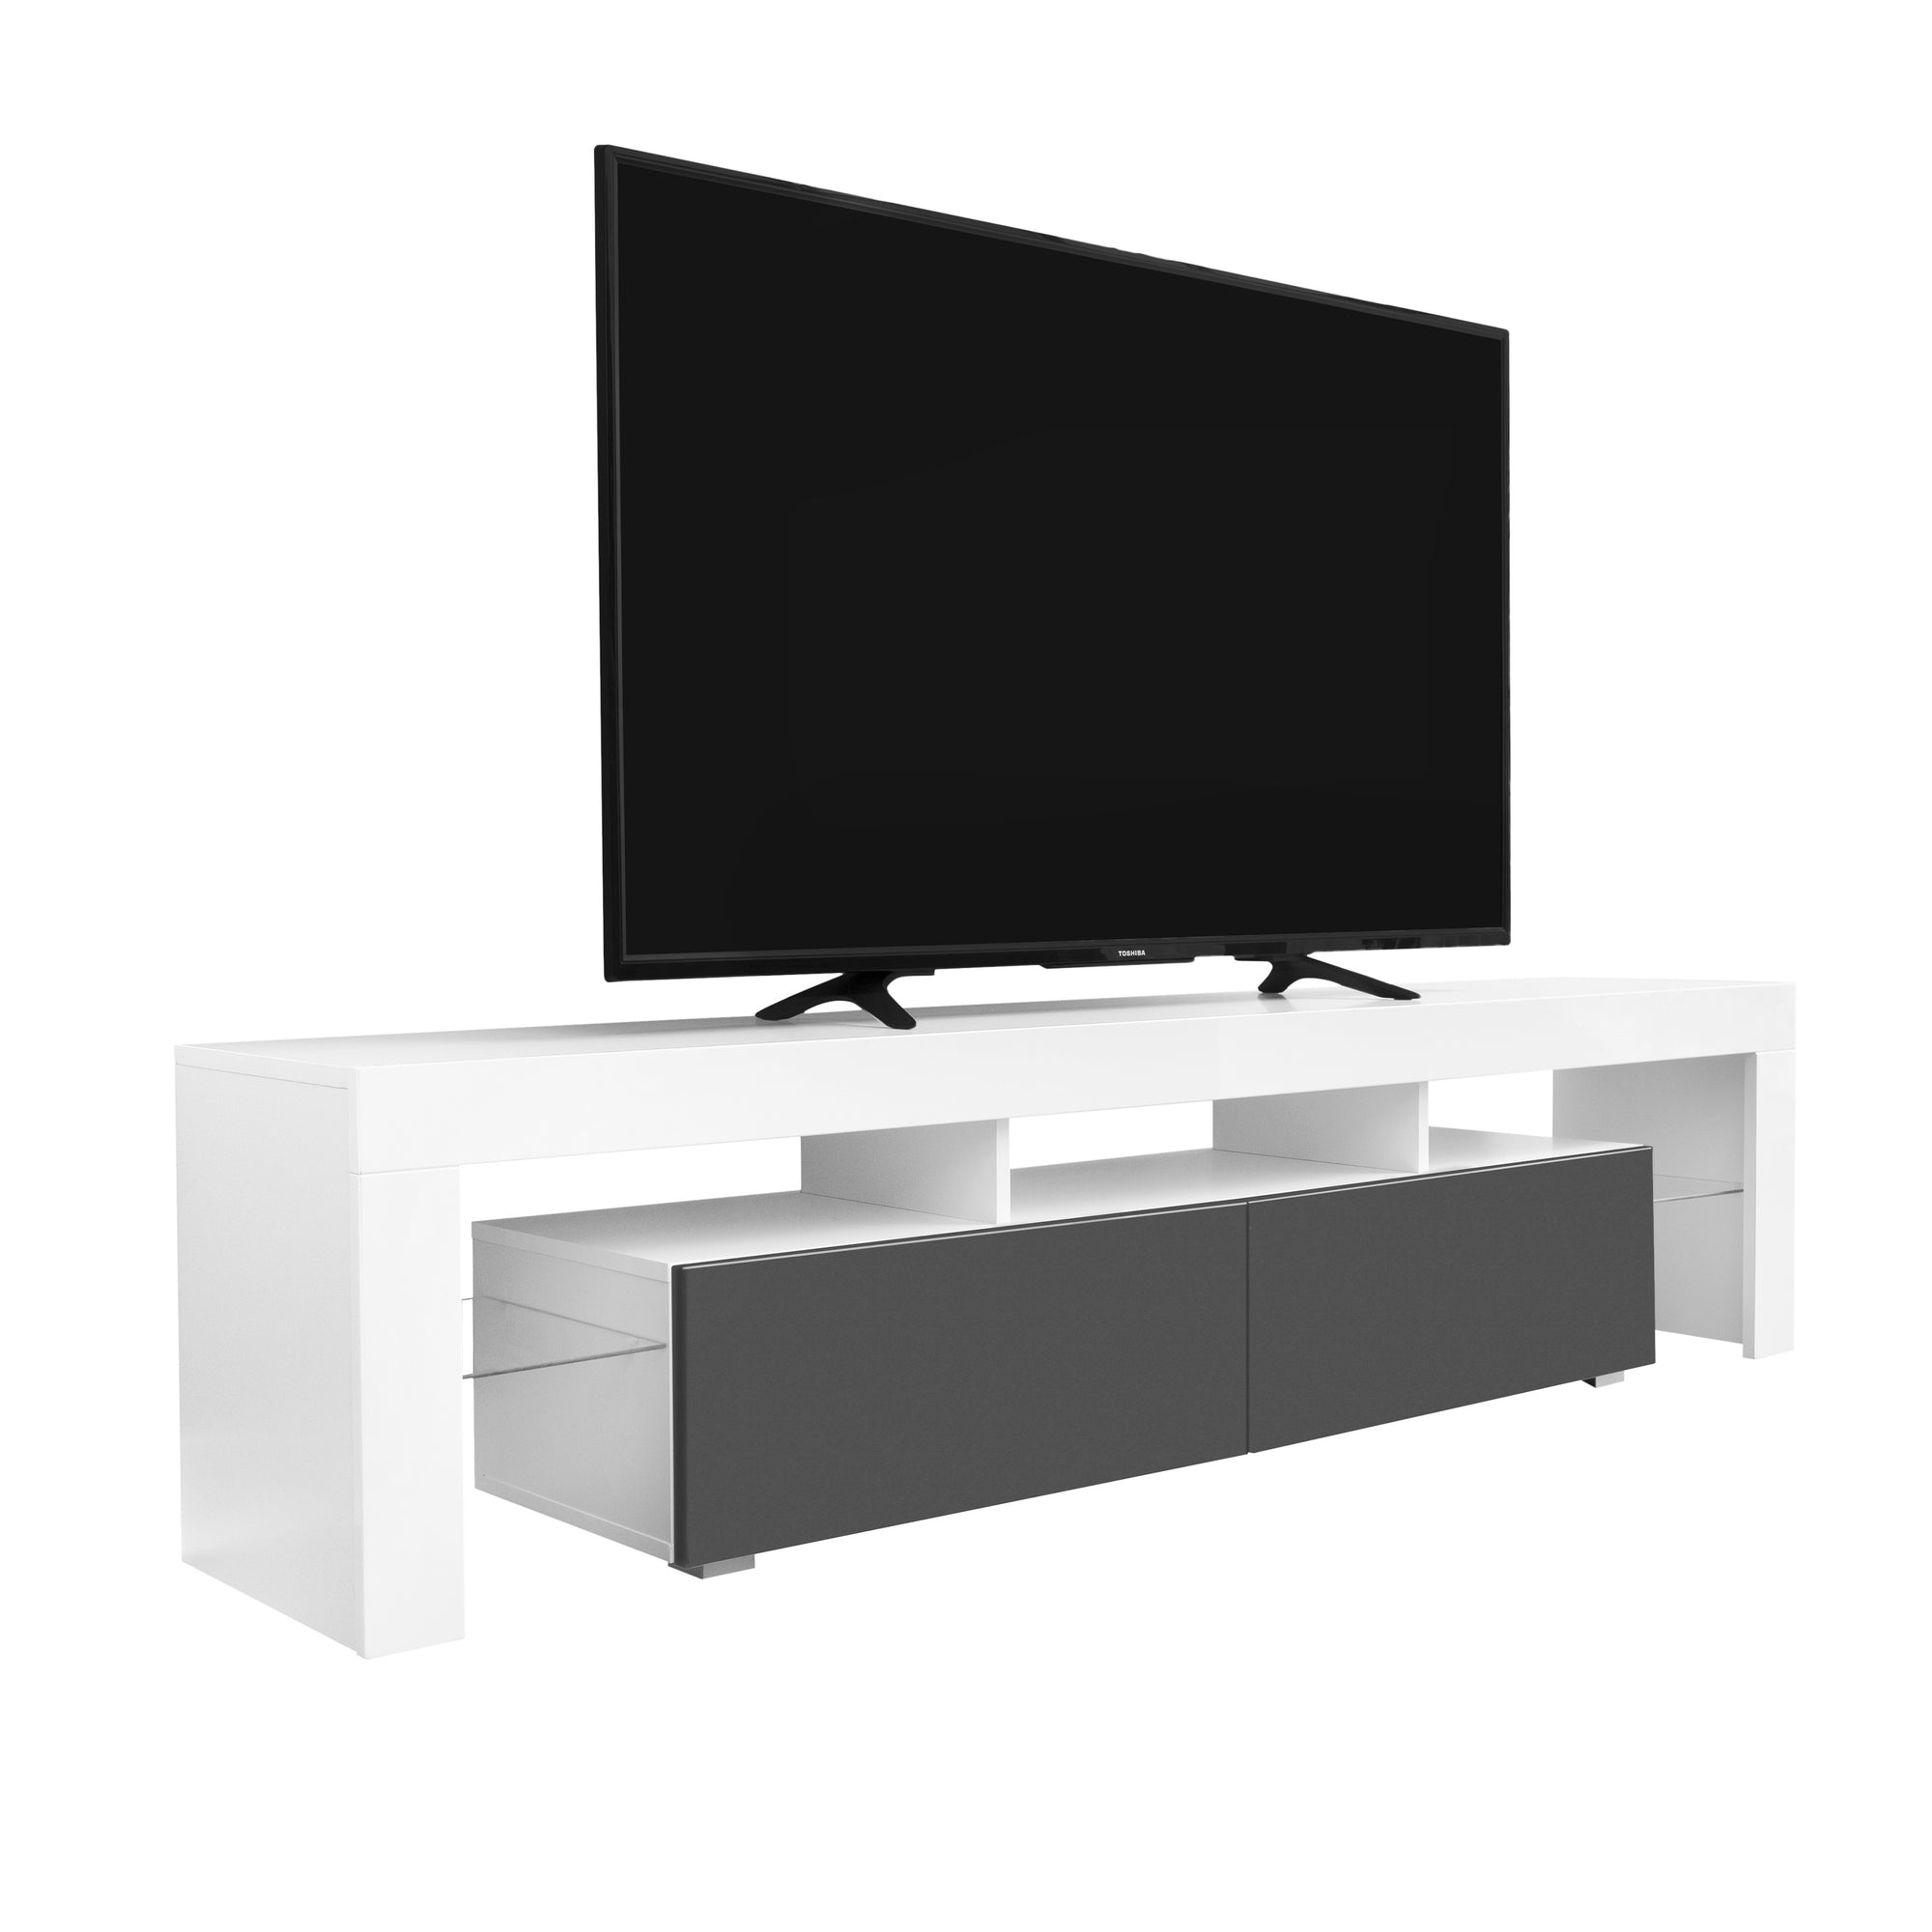 Copenhagen Tv Stand Whitegrey For Tvs Up To 80 With White Led